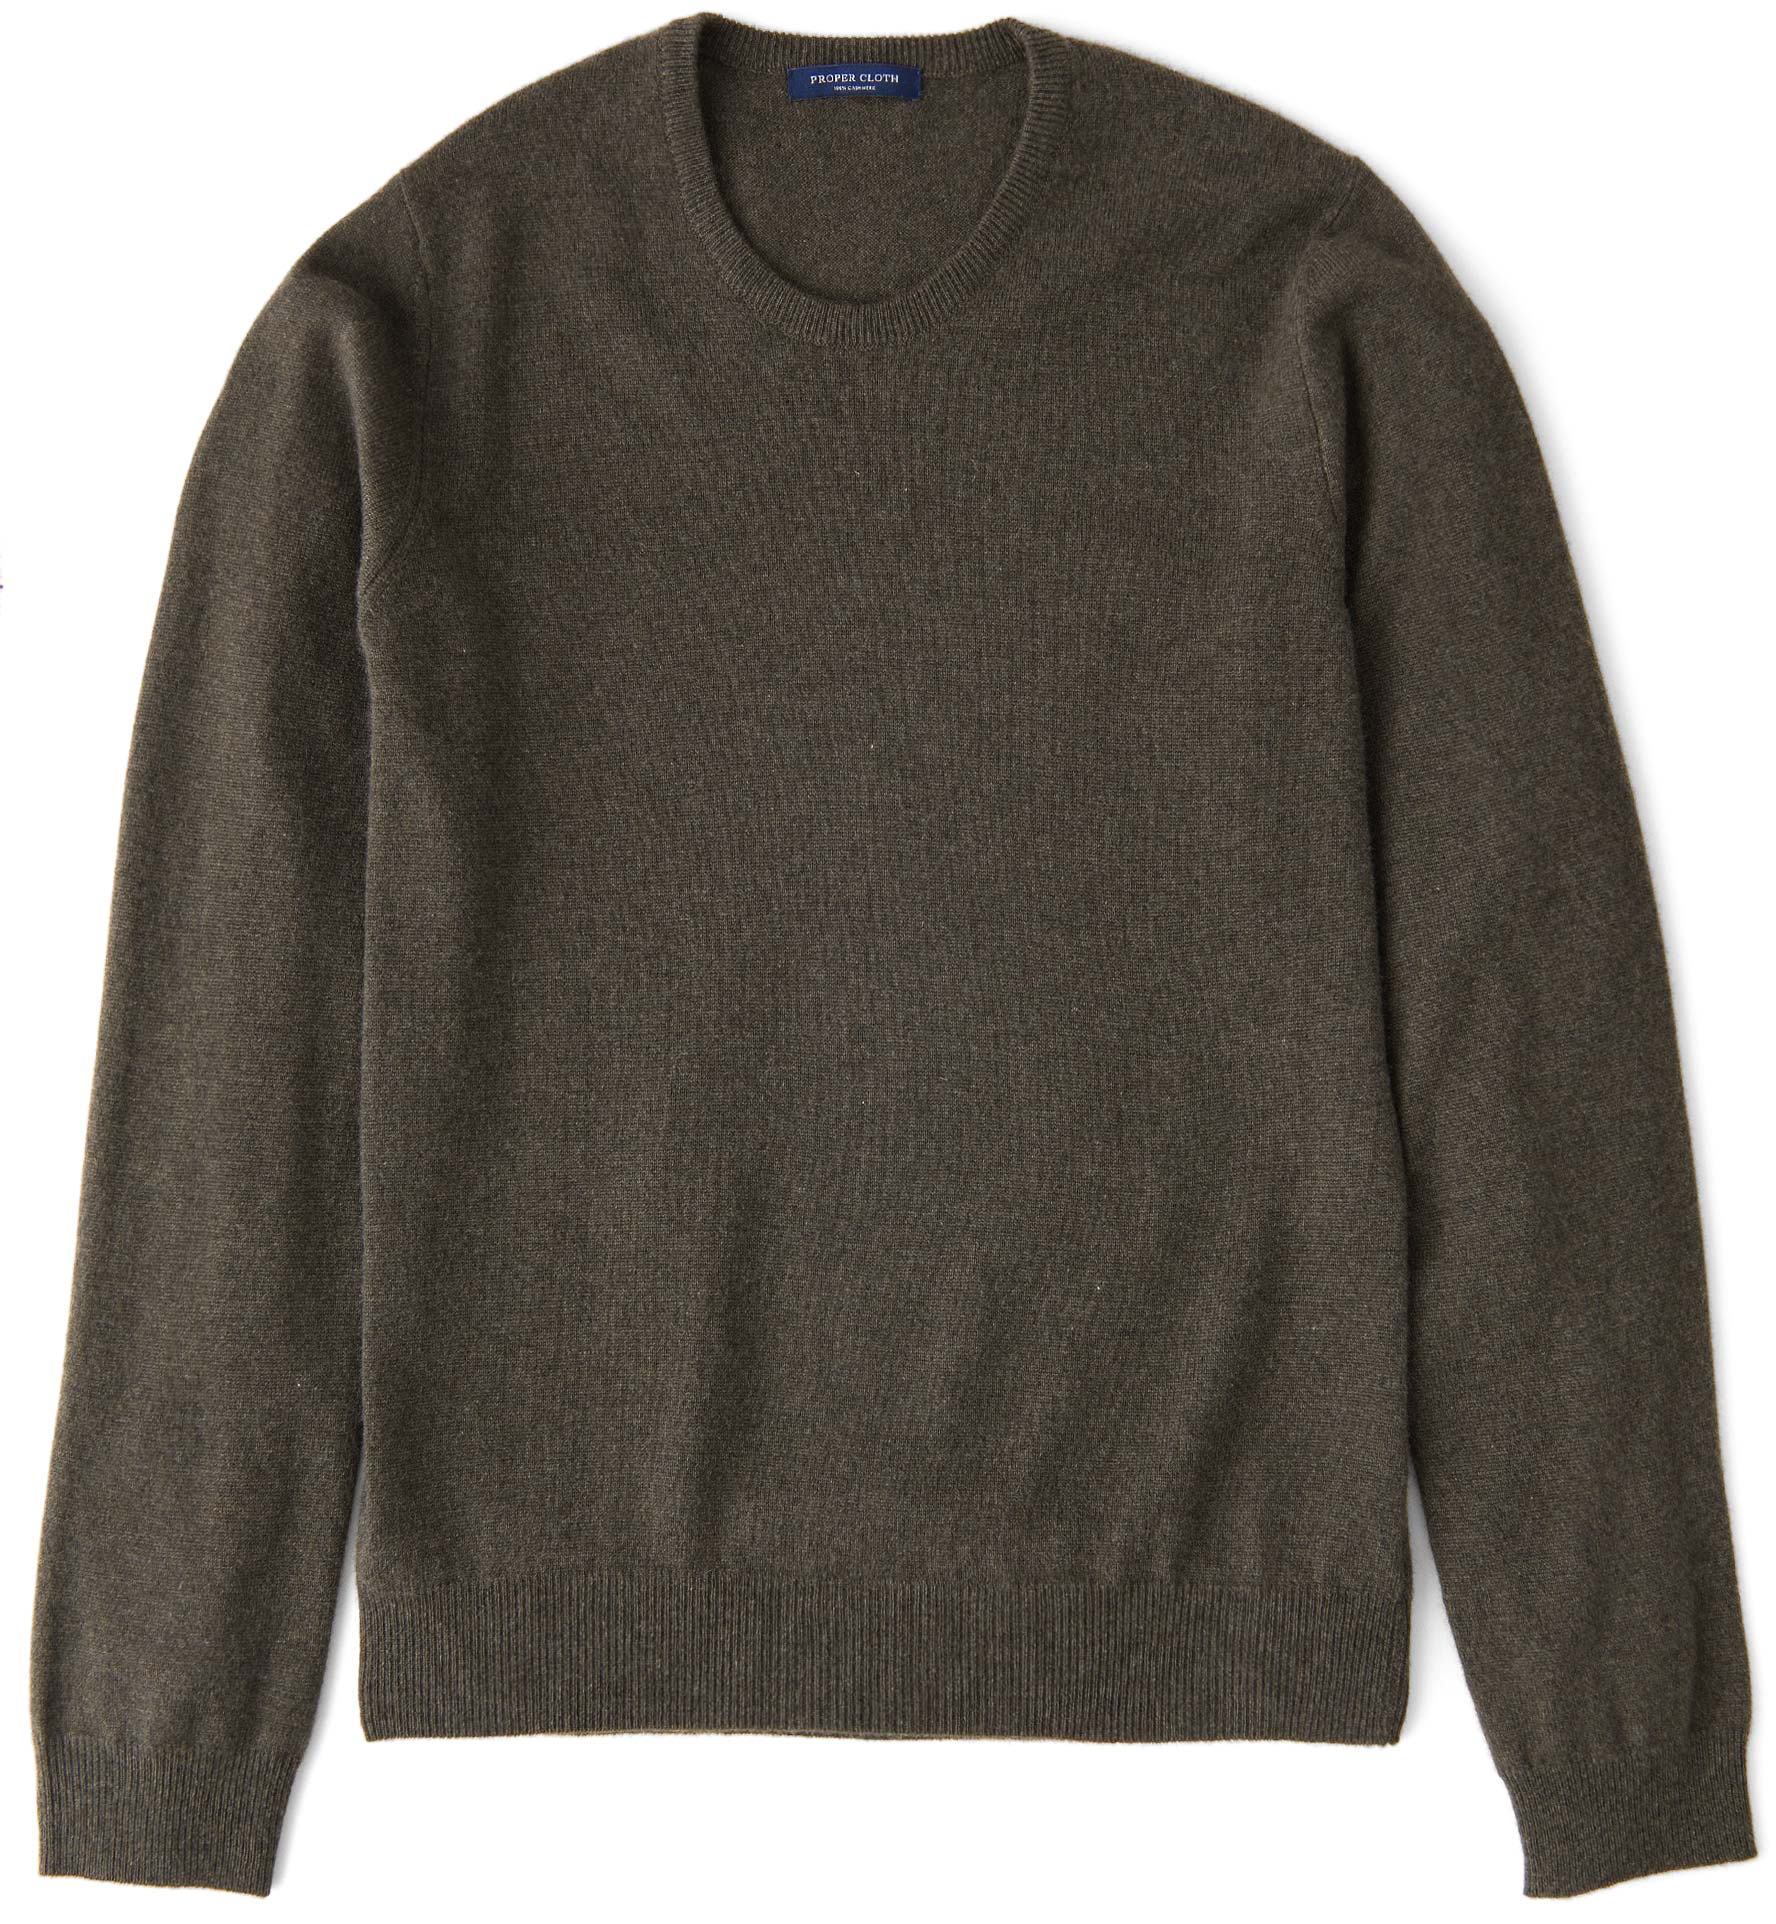 Zoom Image of Pine Cashmere Crewneck Sweater